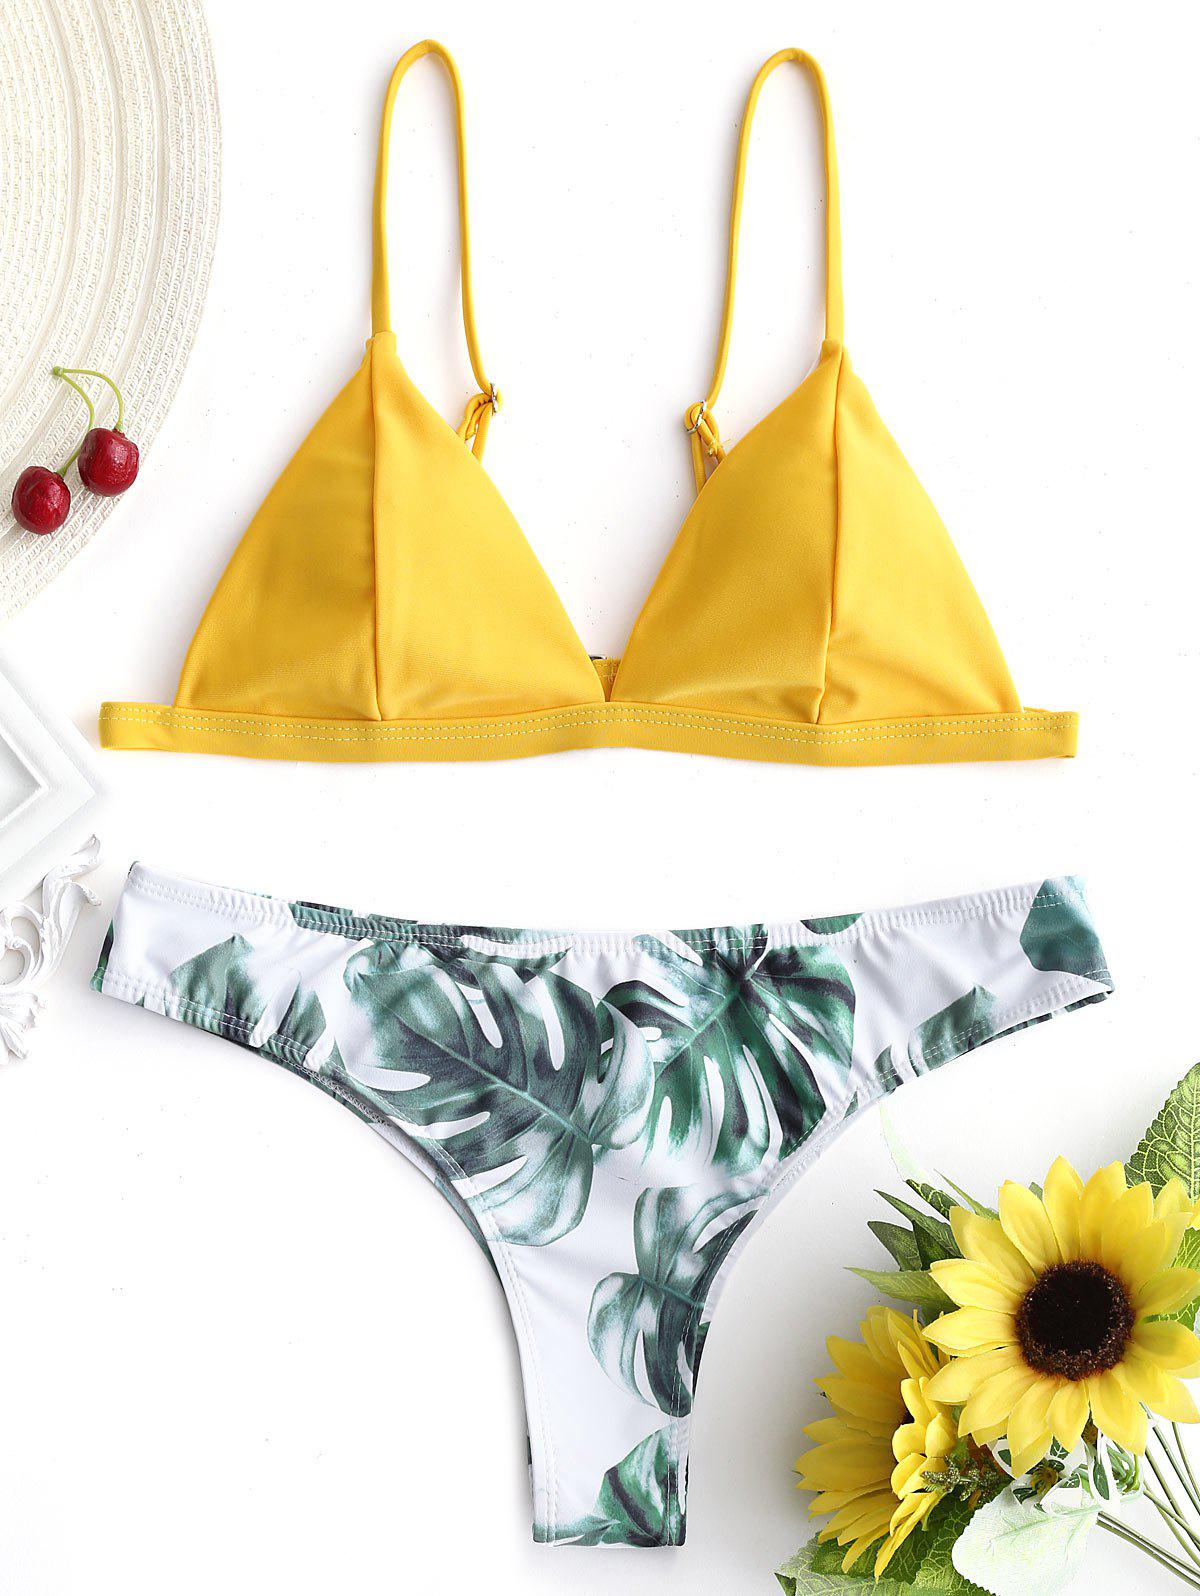 Padded Bikini Top with Palm Leaf Bottoms 234948403